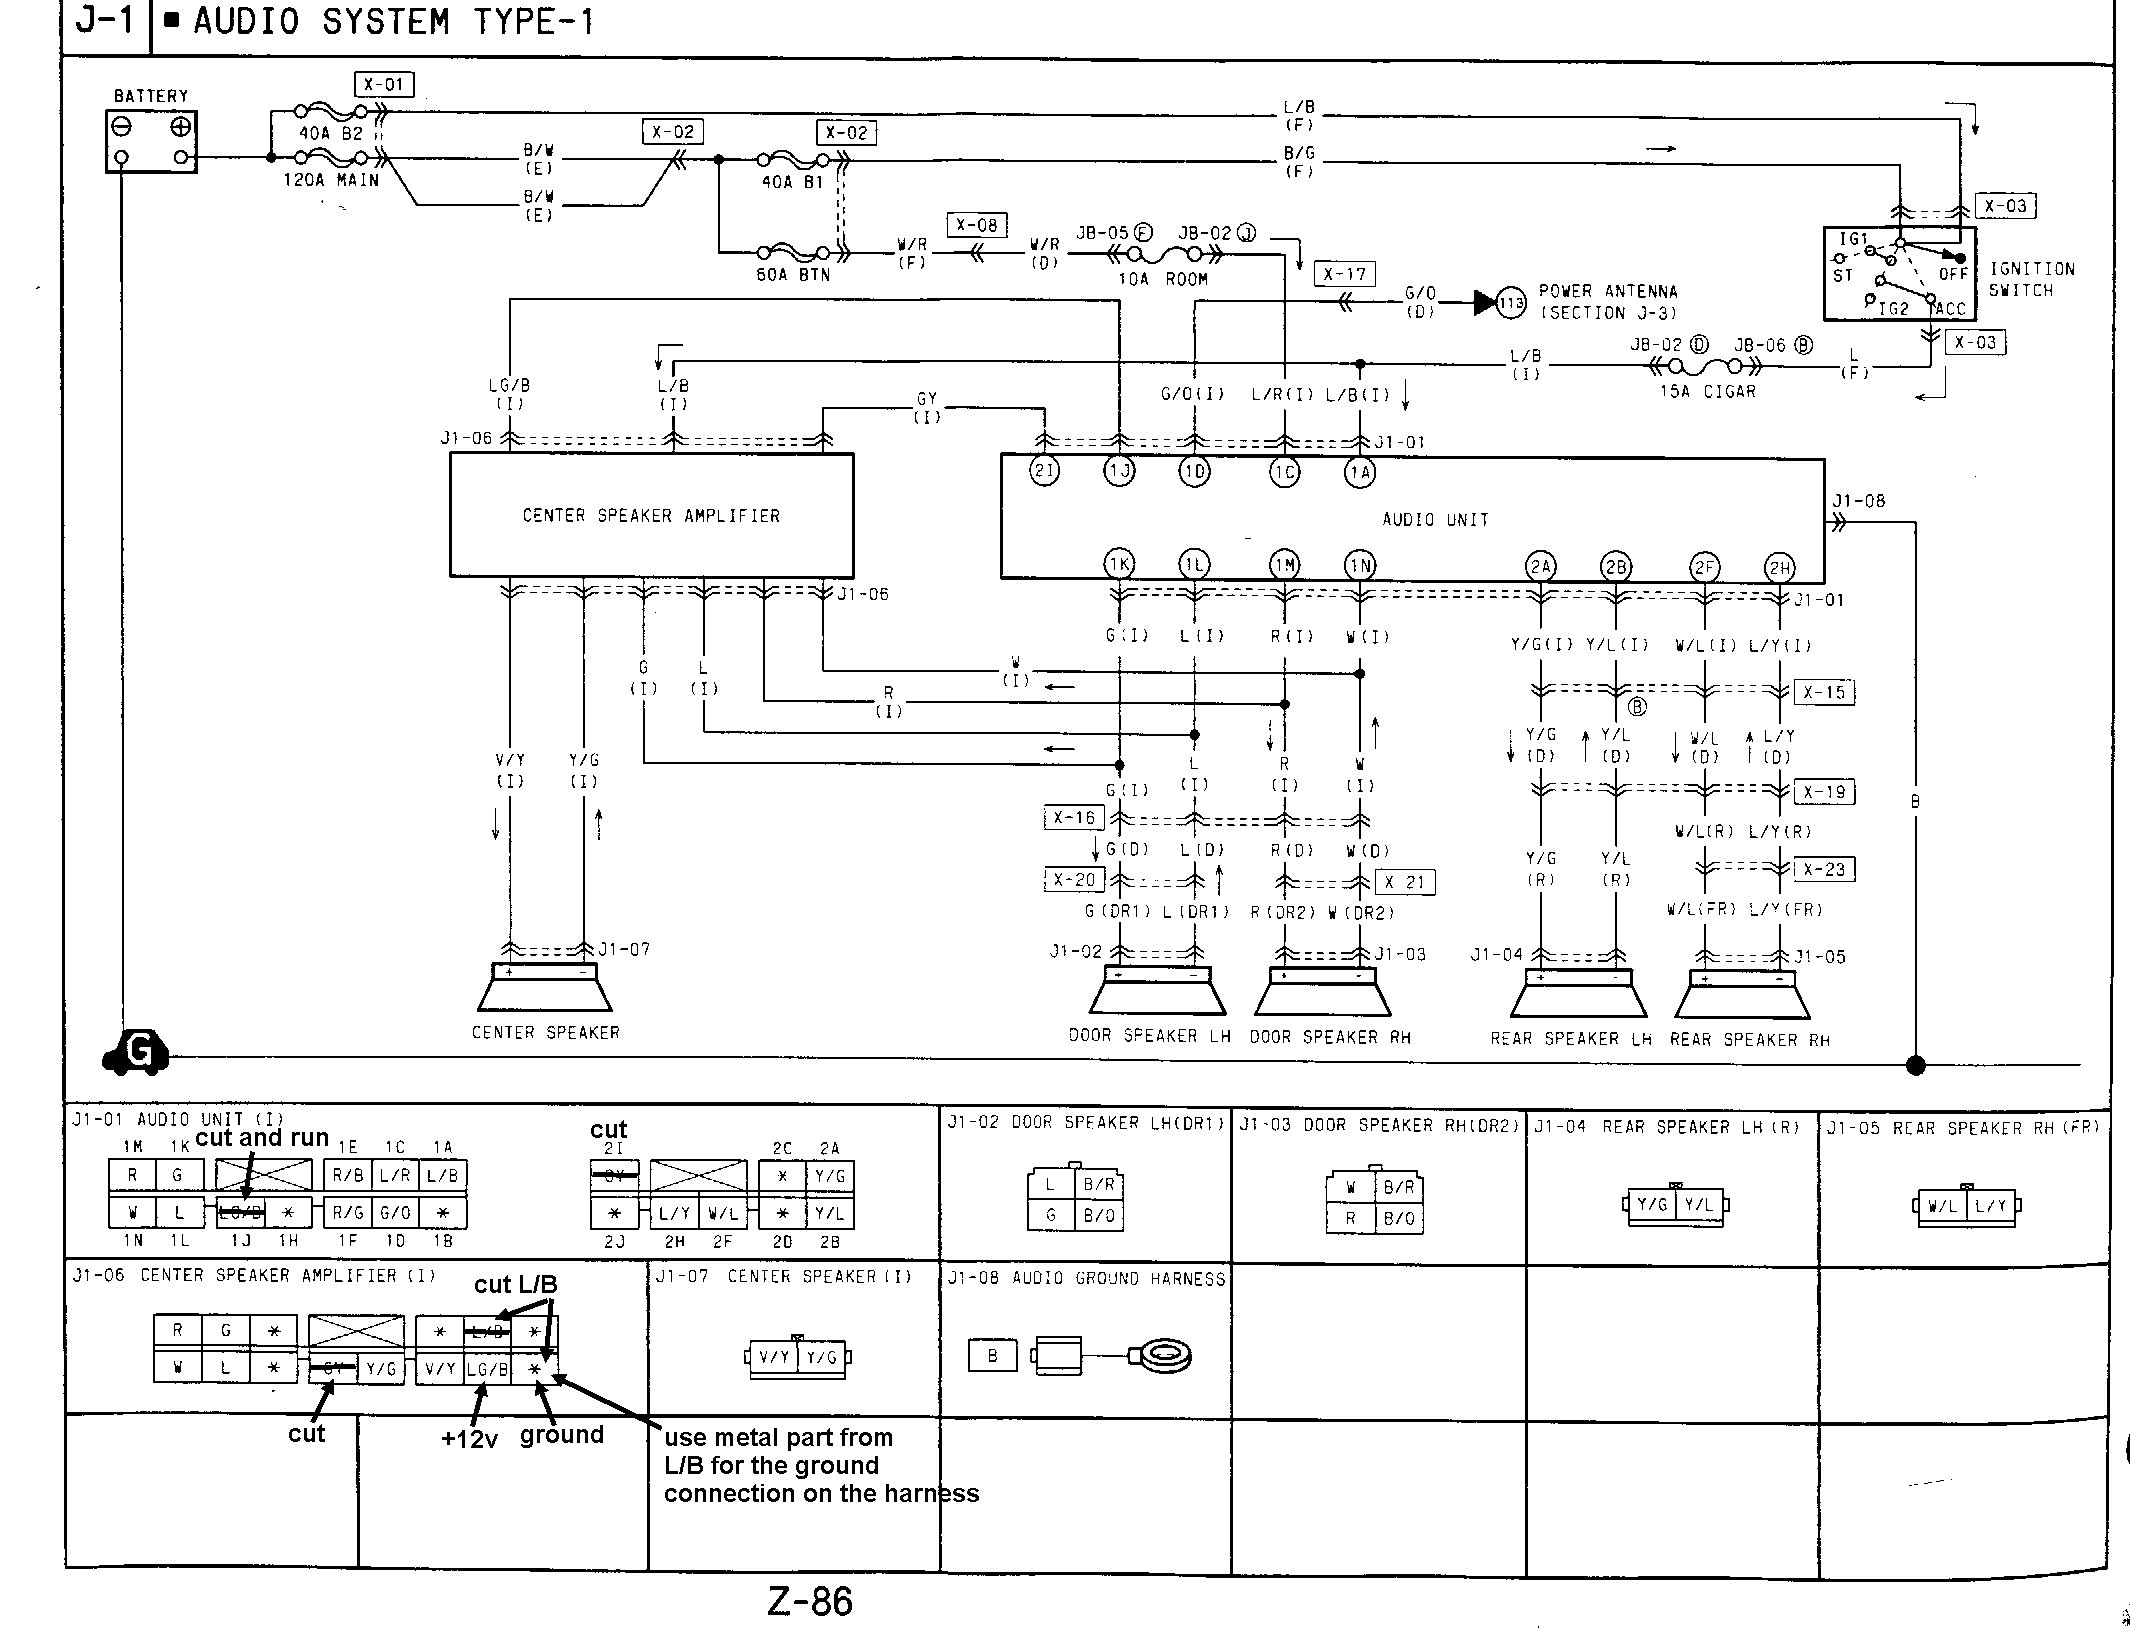 Amplifier Wiring Diagram Lovely fortable Cinemate Bose Wiring Diagram Ideas Electrical and